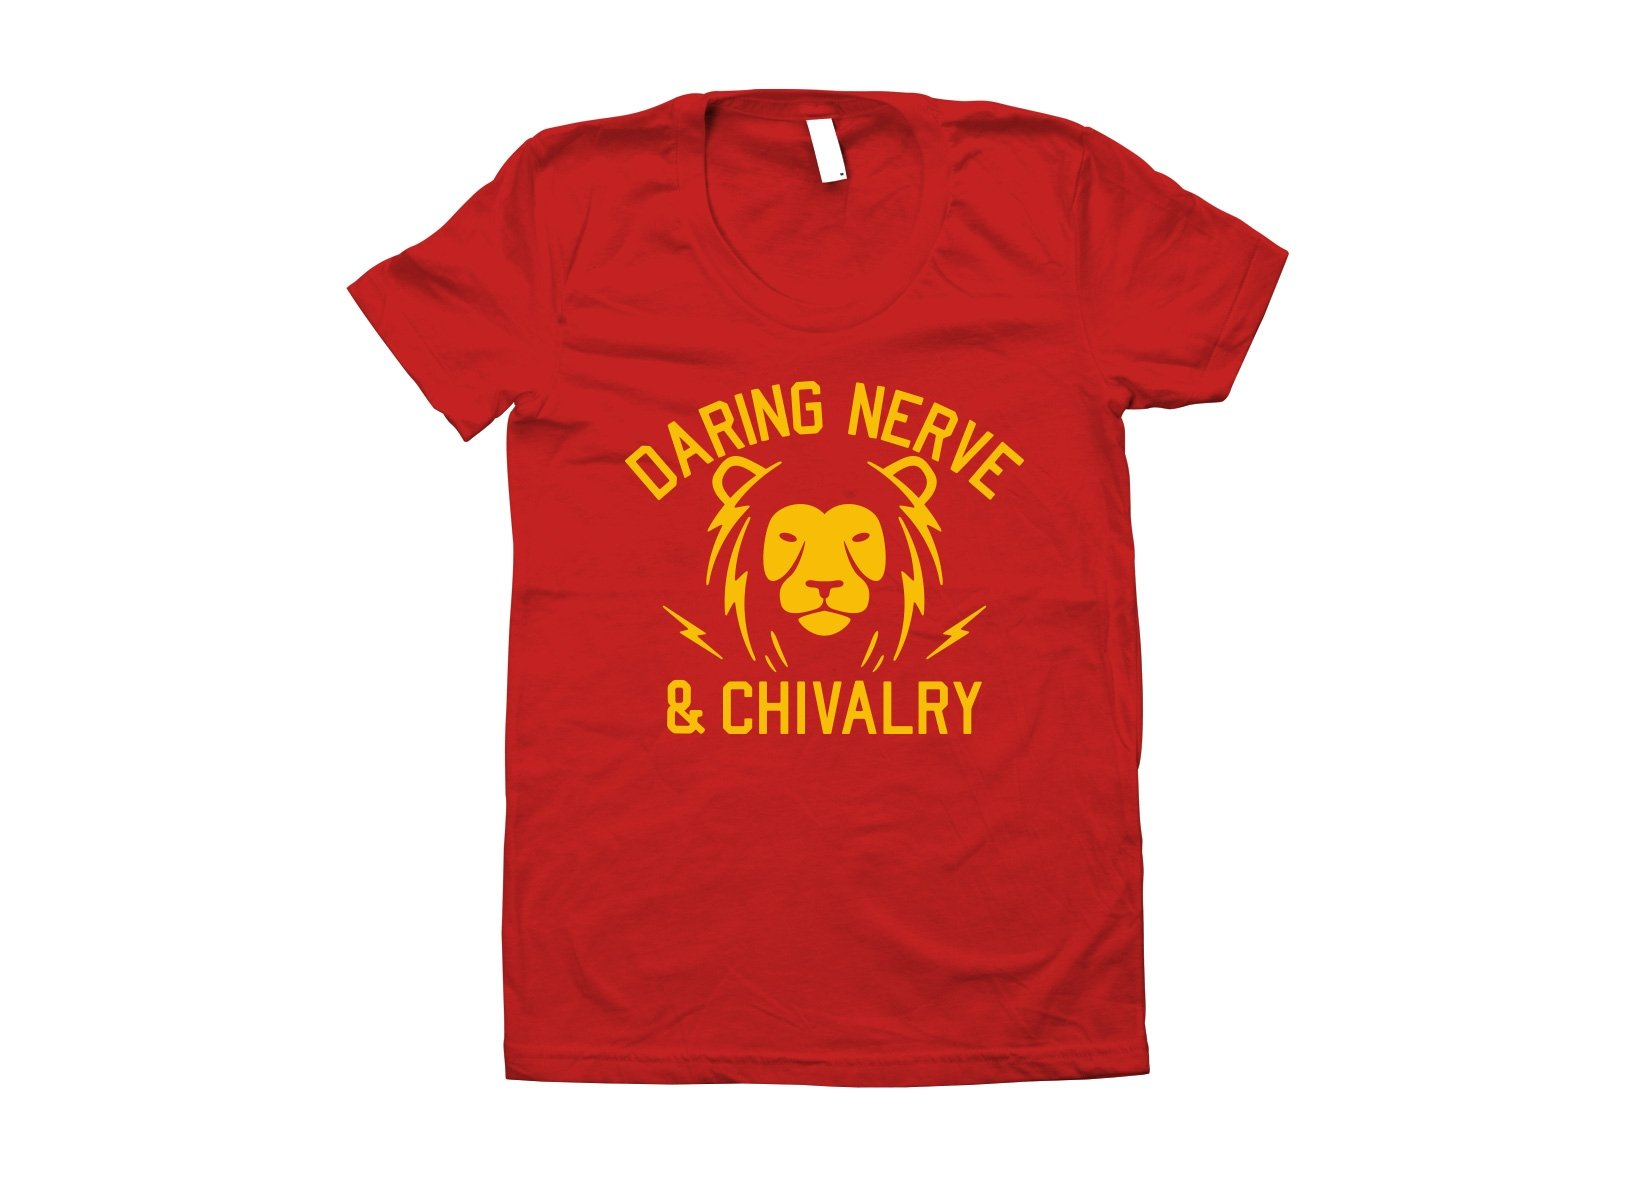 Daring, Nerve, And Chivalry on Juniors T-Shirt